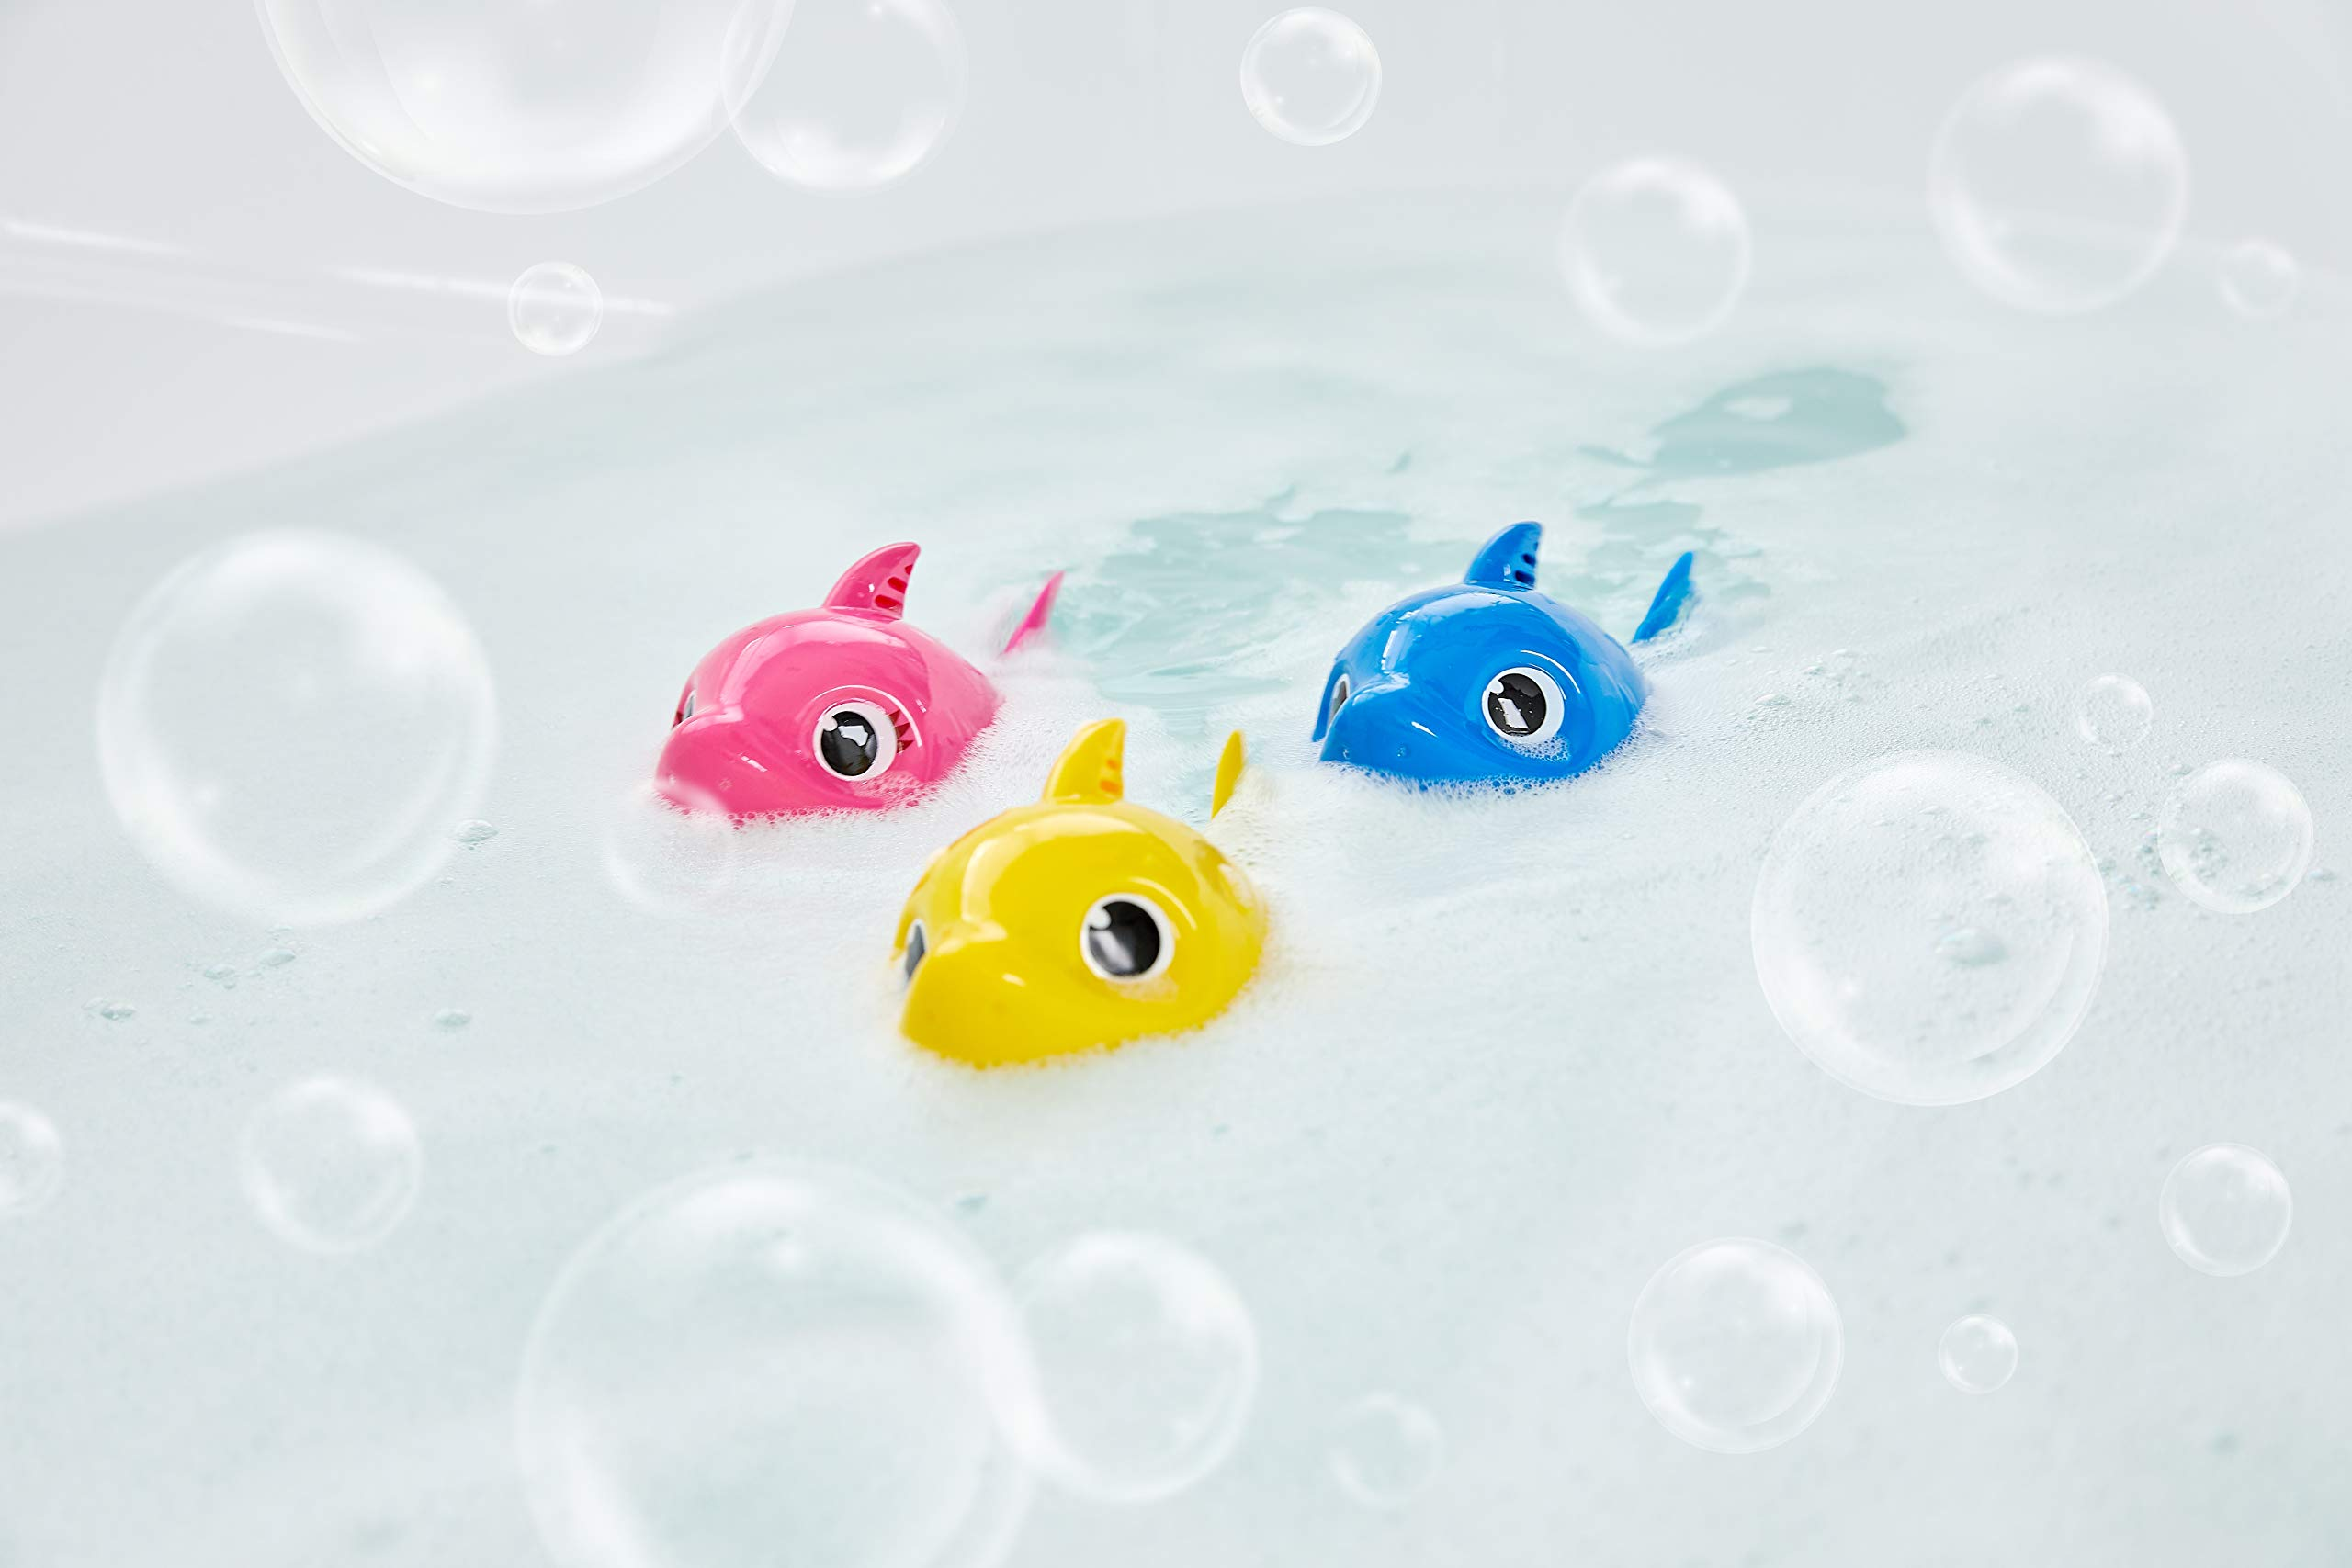 Robo Alive Junior Baby Shark Battery-Powered Sing and Swim Bath Toy by ZURU - Daddy Shark (Blue) by Robo Alive Junior (Image #8)